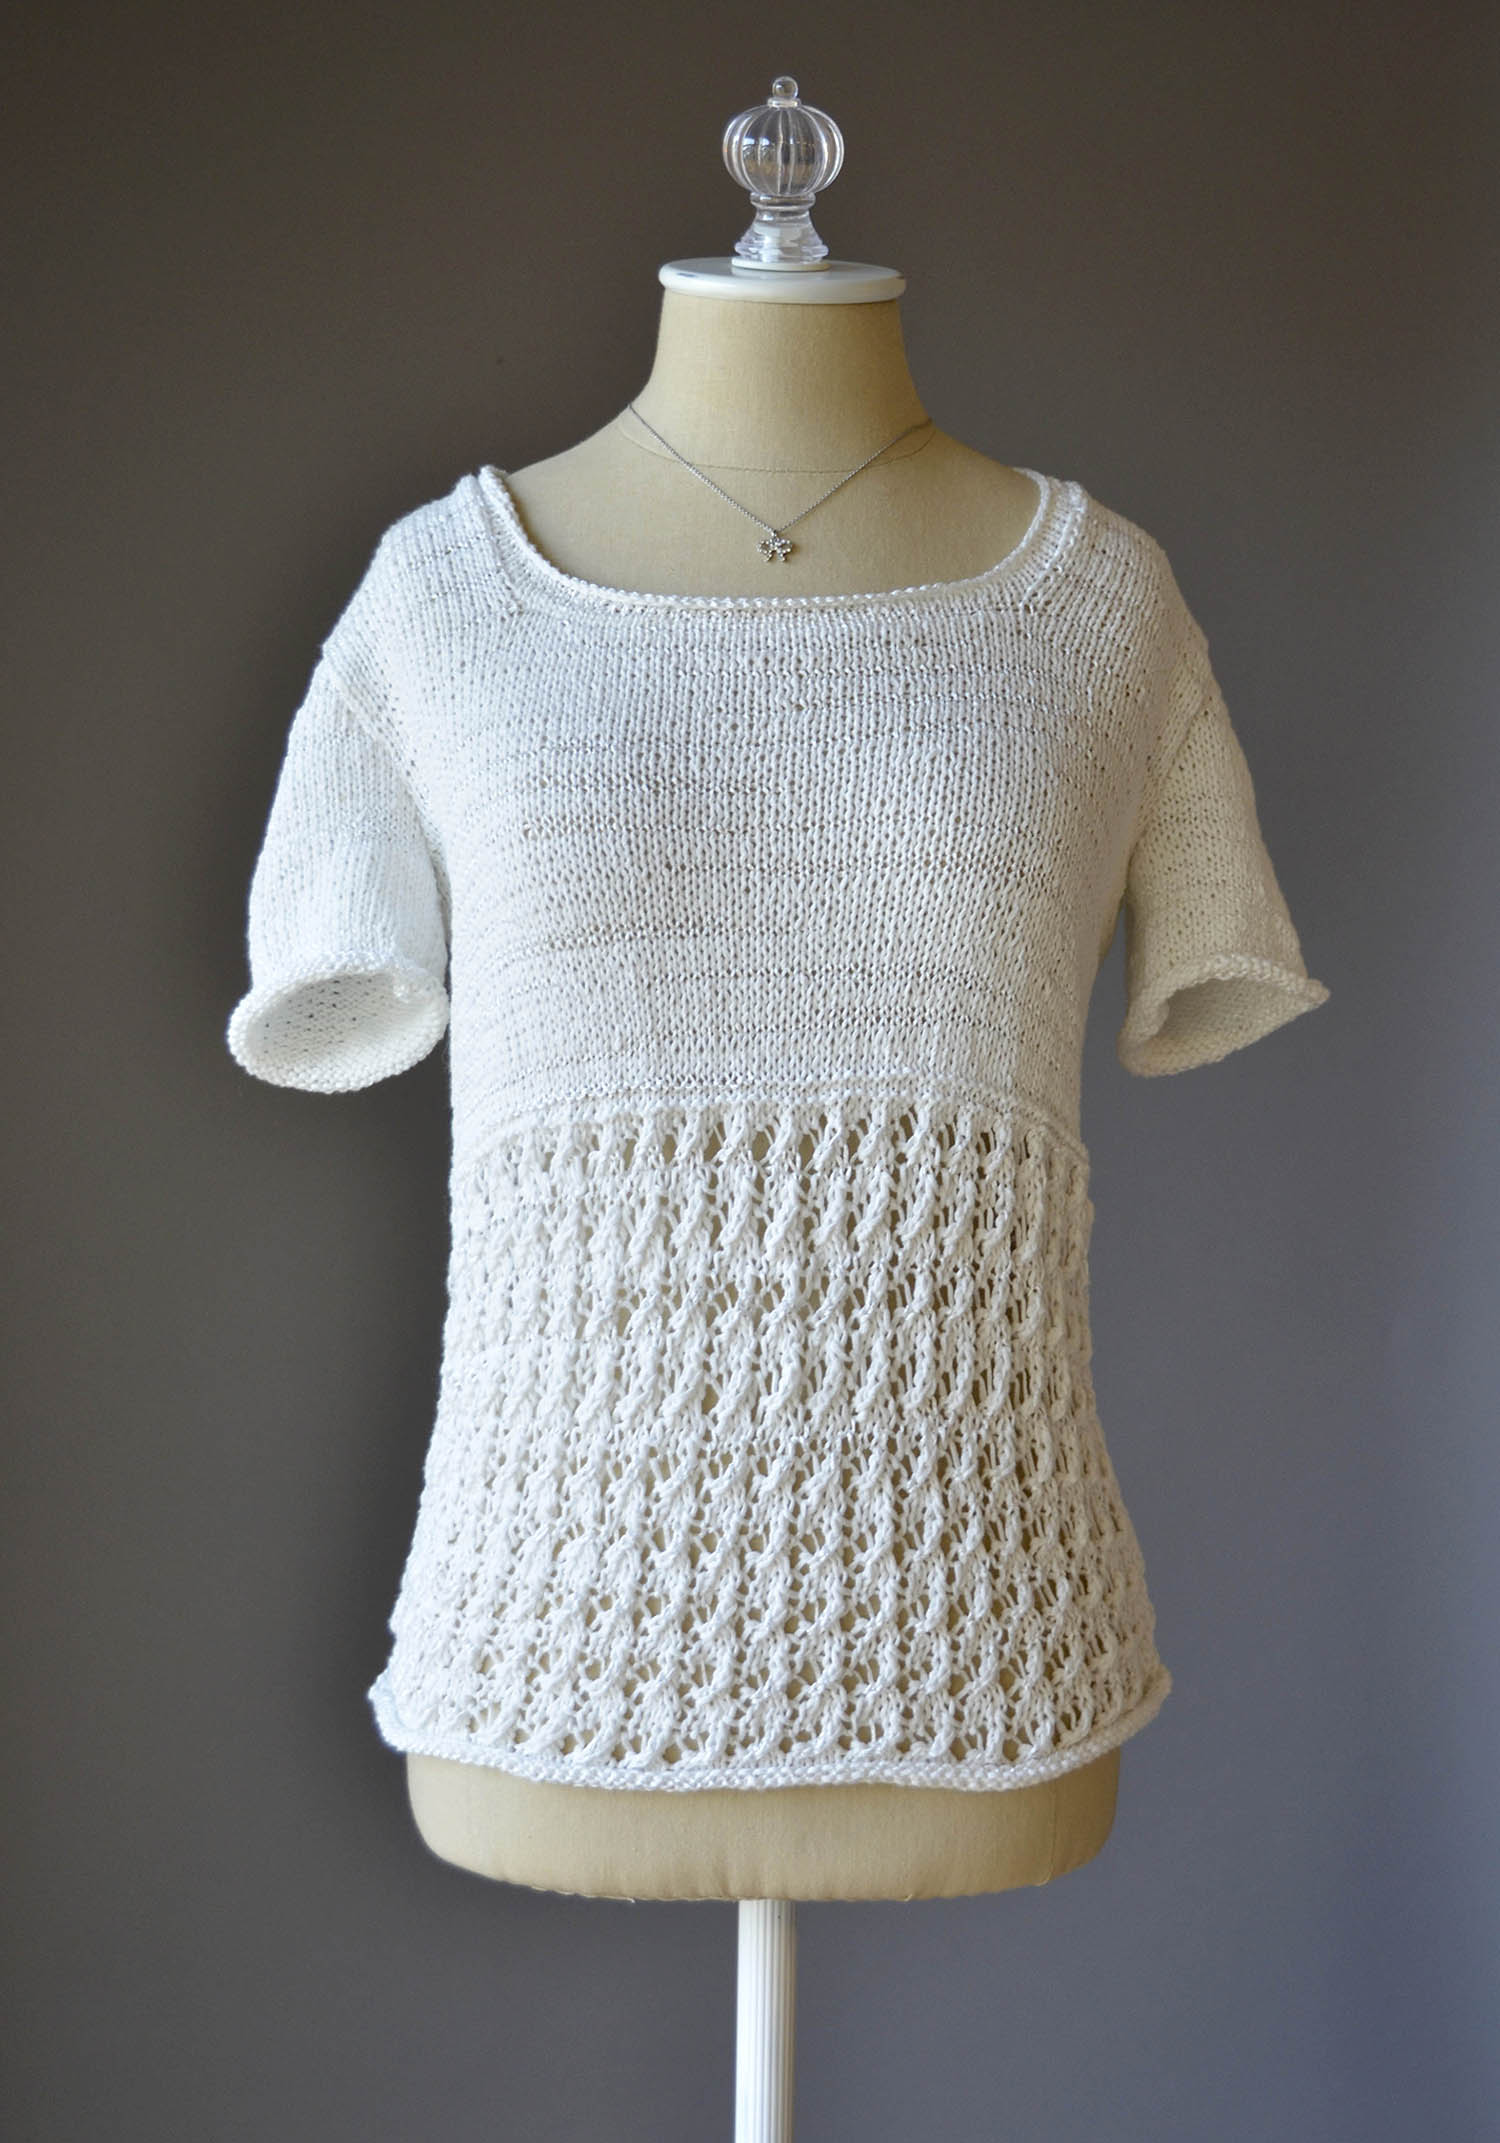 Lumen Mermaid Tunic blog